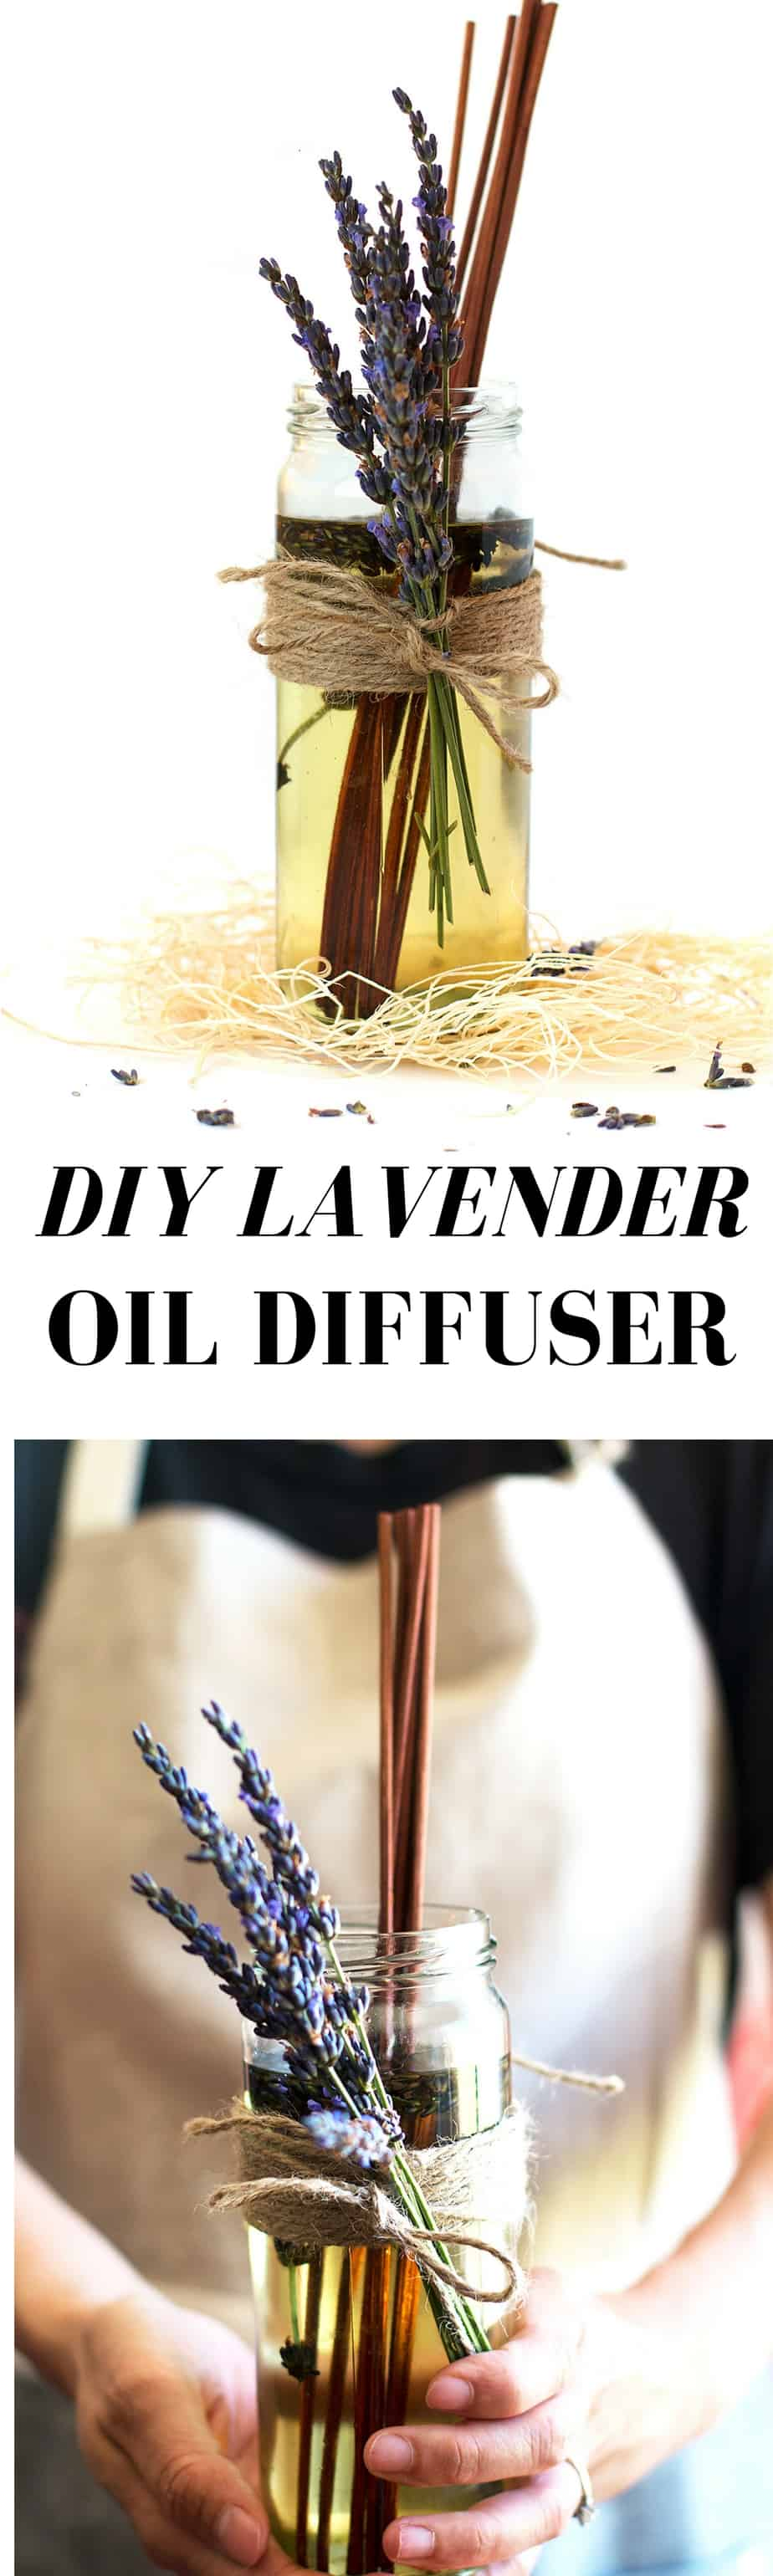 DIY LAVENDER OIL DIFFUSER. NATURAL RECIPE USING NON TOXIC INGREDIENTS, PERFECT ESSENTIAL OILS FOR CALMING, AND RELAXING #AD